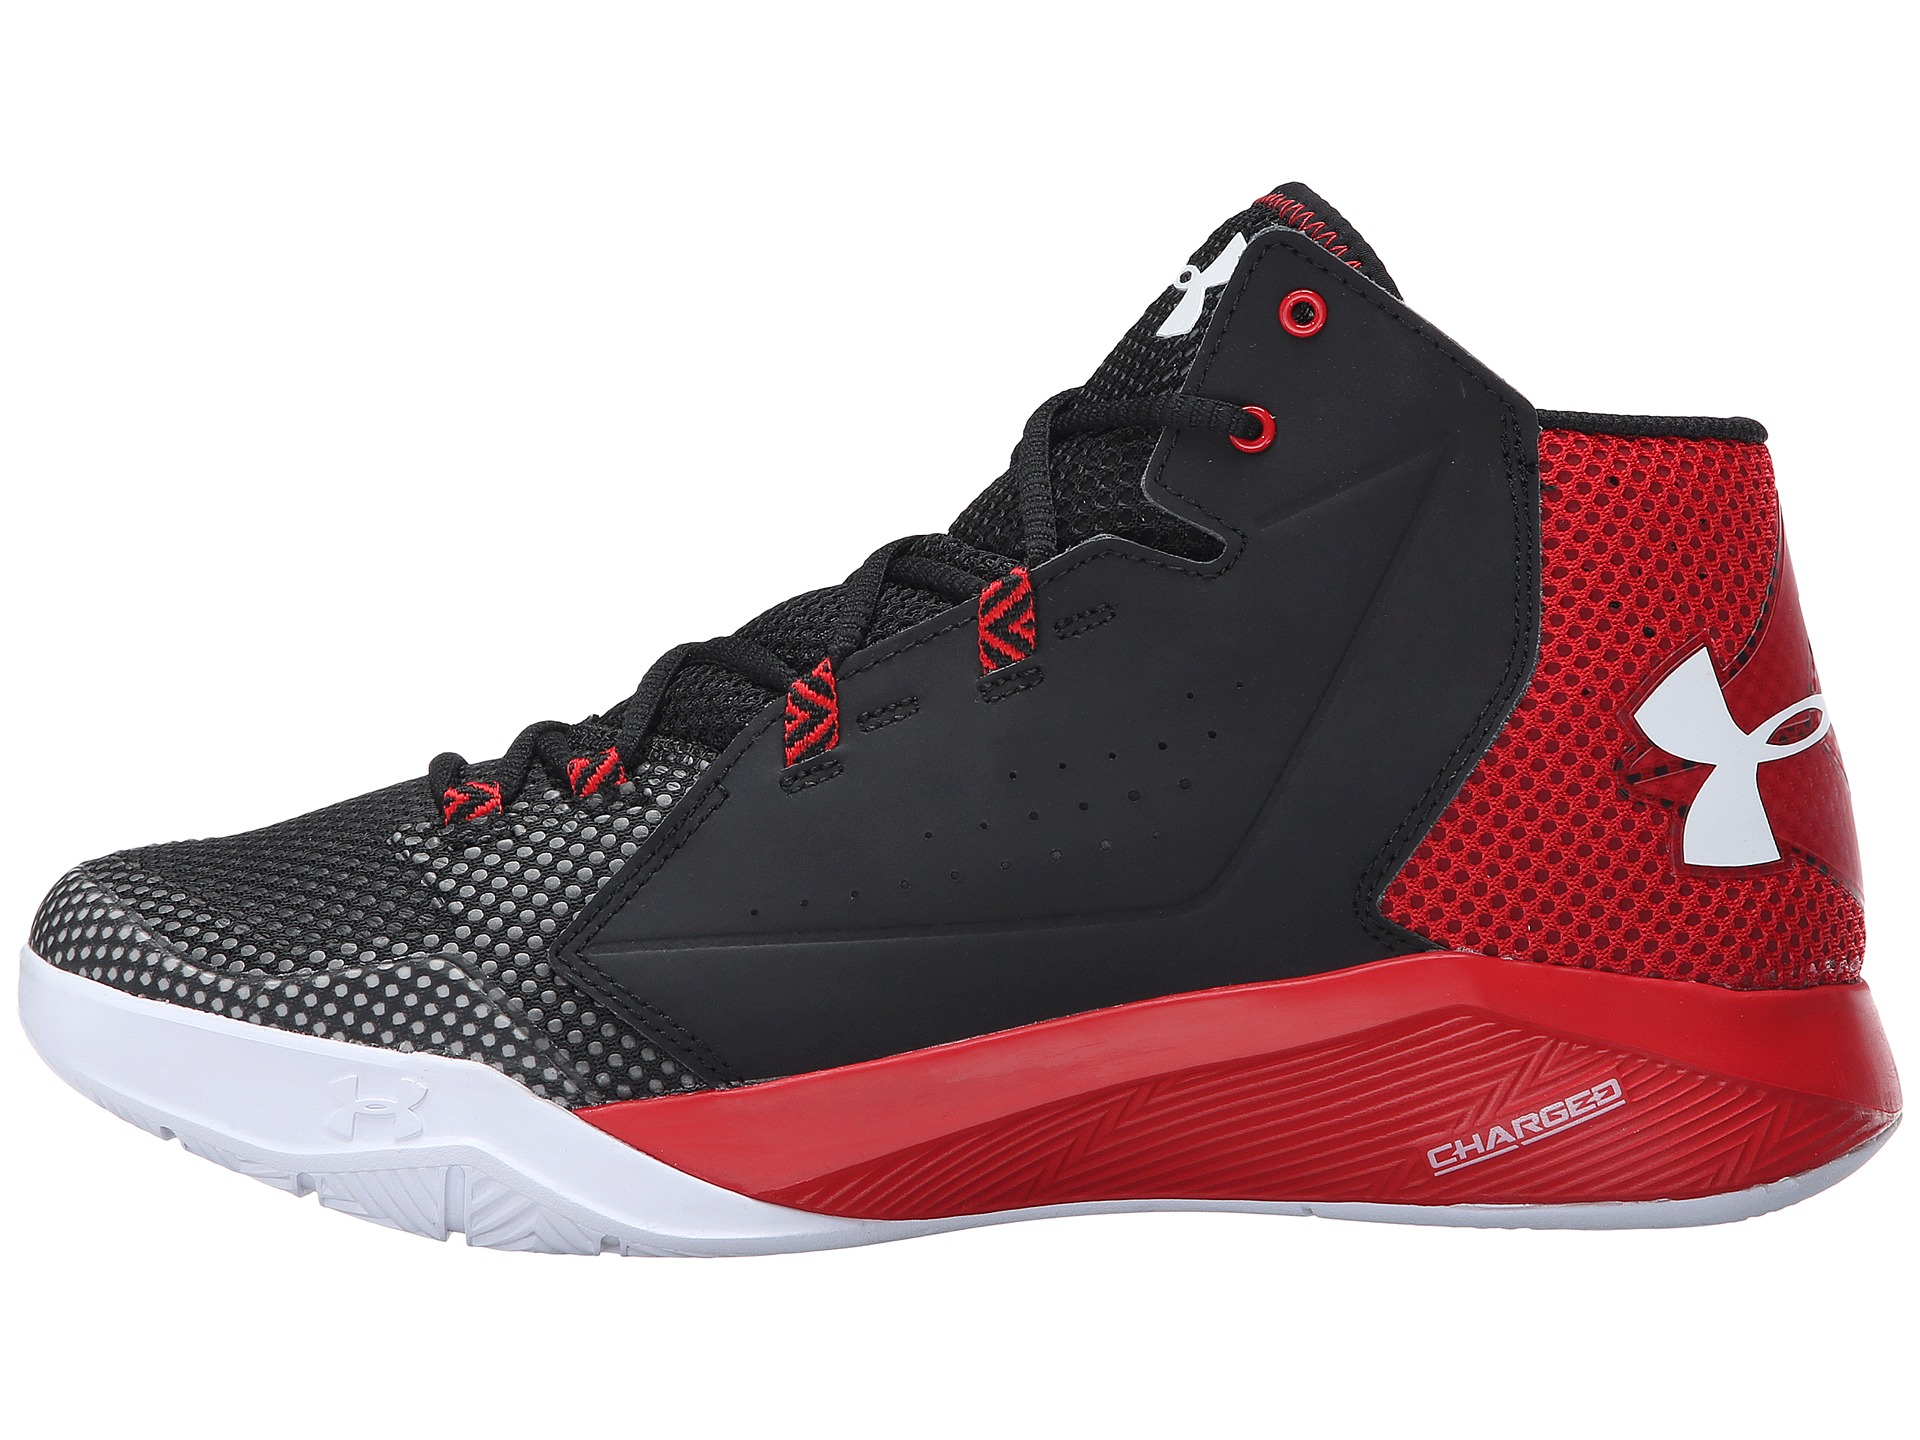 Under Armour UA Torch Fade Black/Red/White - Zappos.com Free Shipping ...